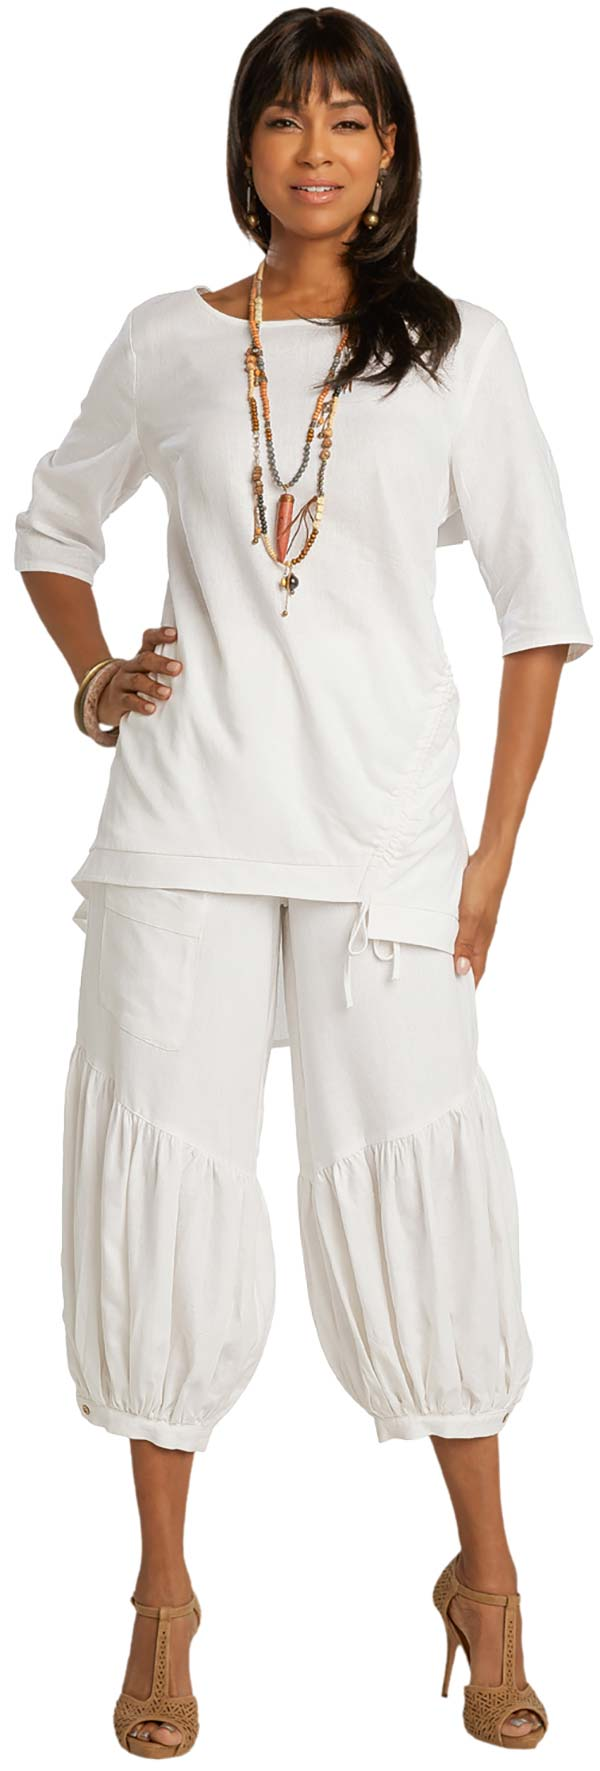 Lisa Rene 3364-White - Womens Hi-Lo Linen Tunic And Pleated Puff Pant Set